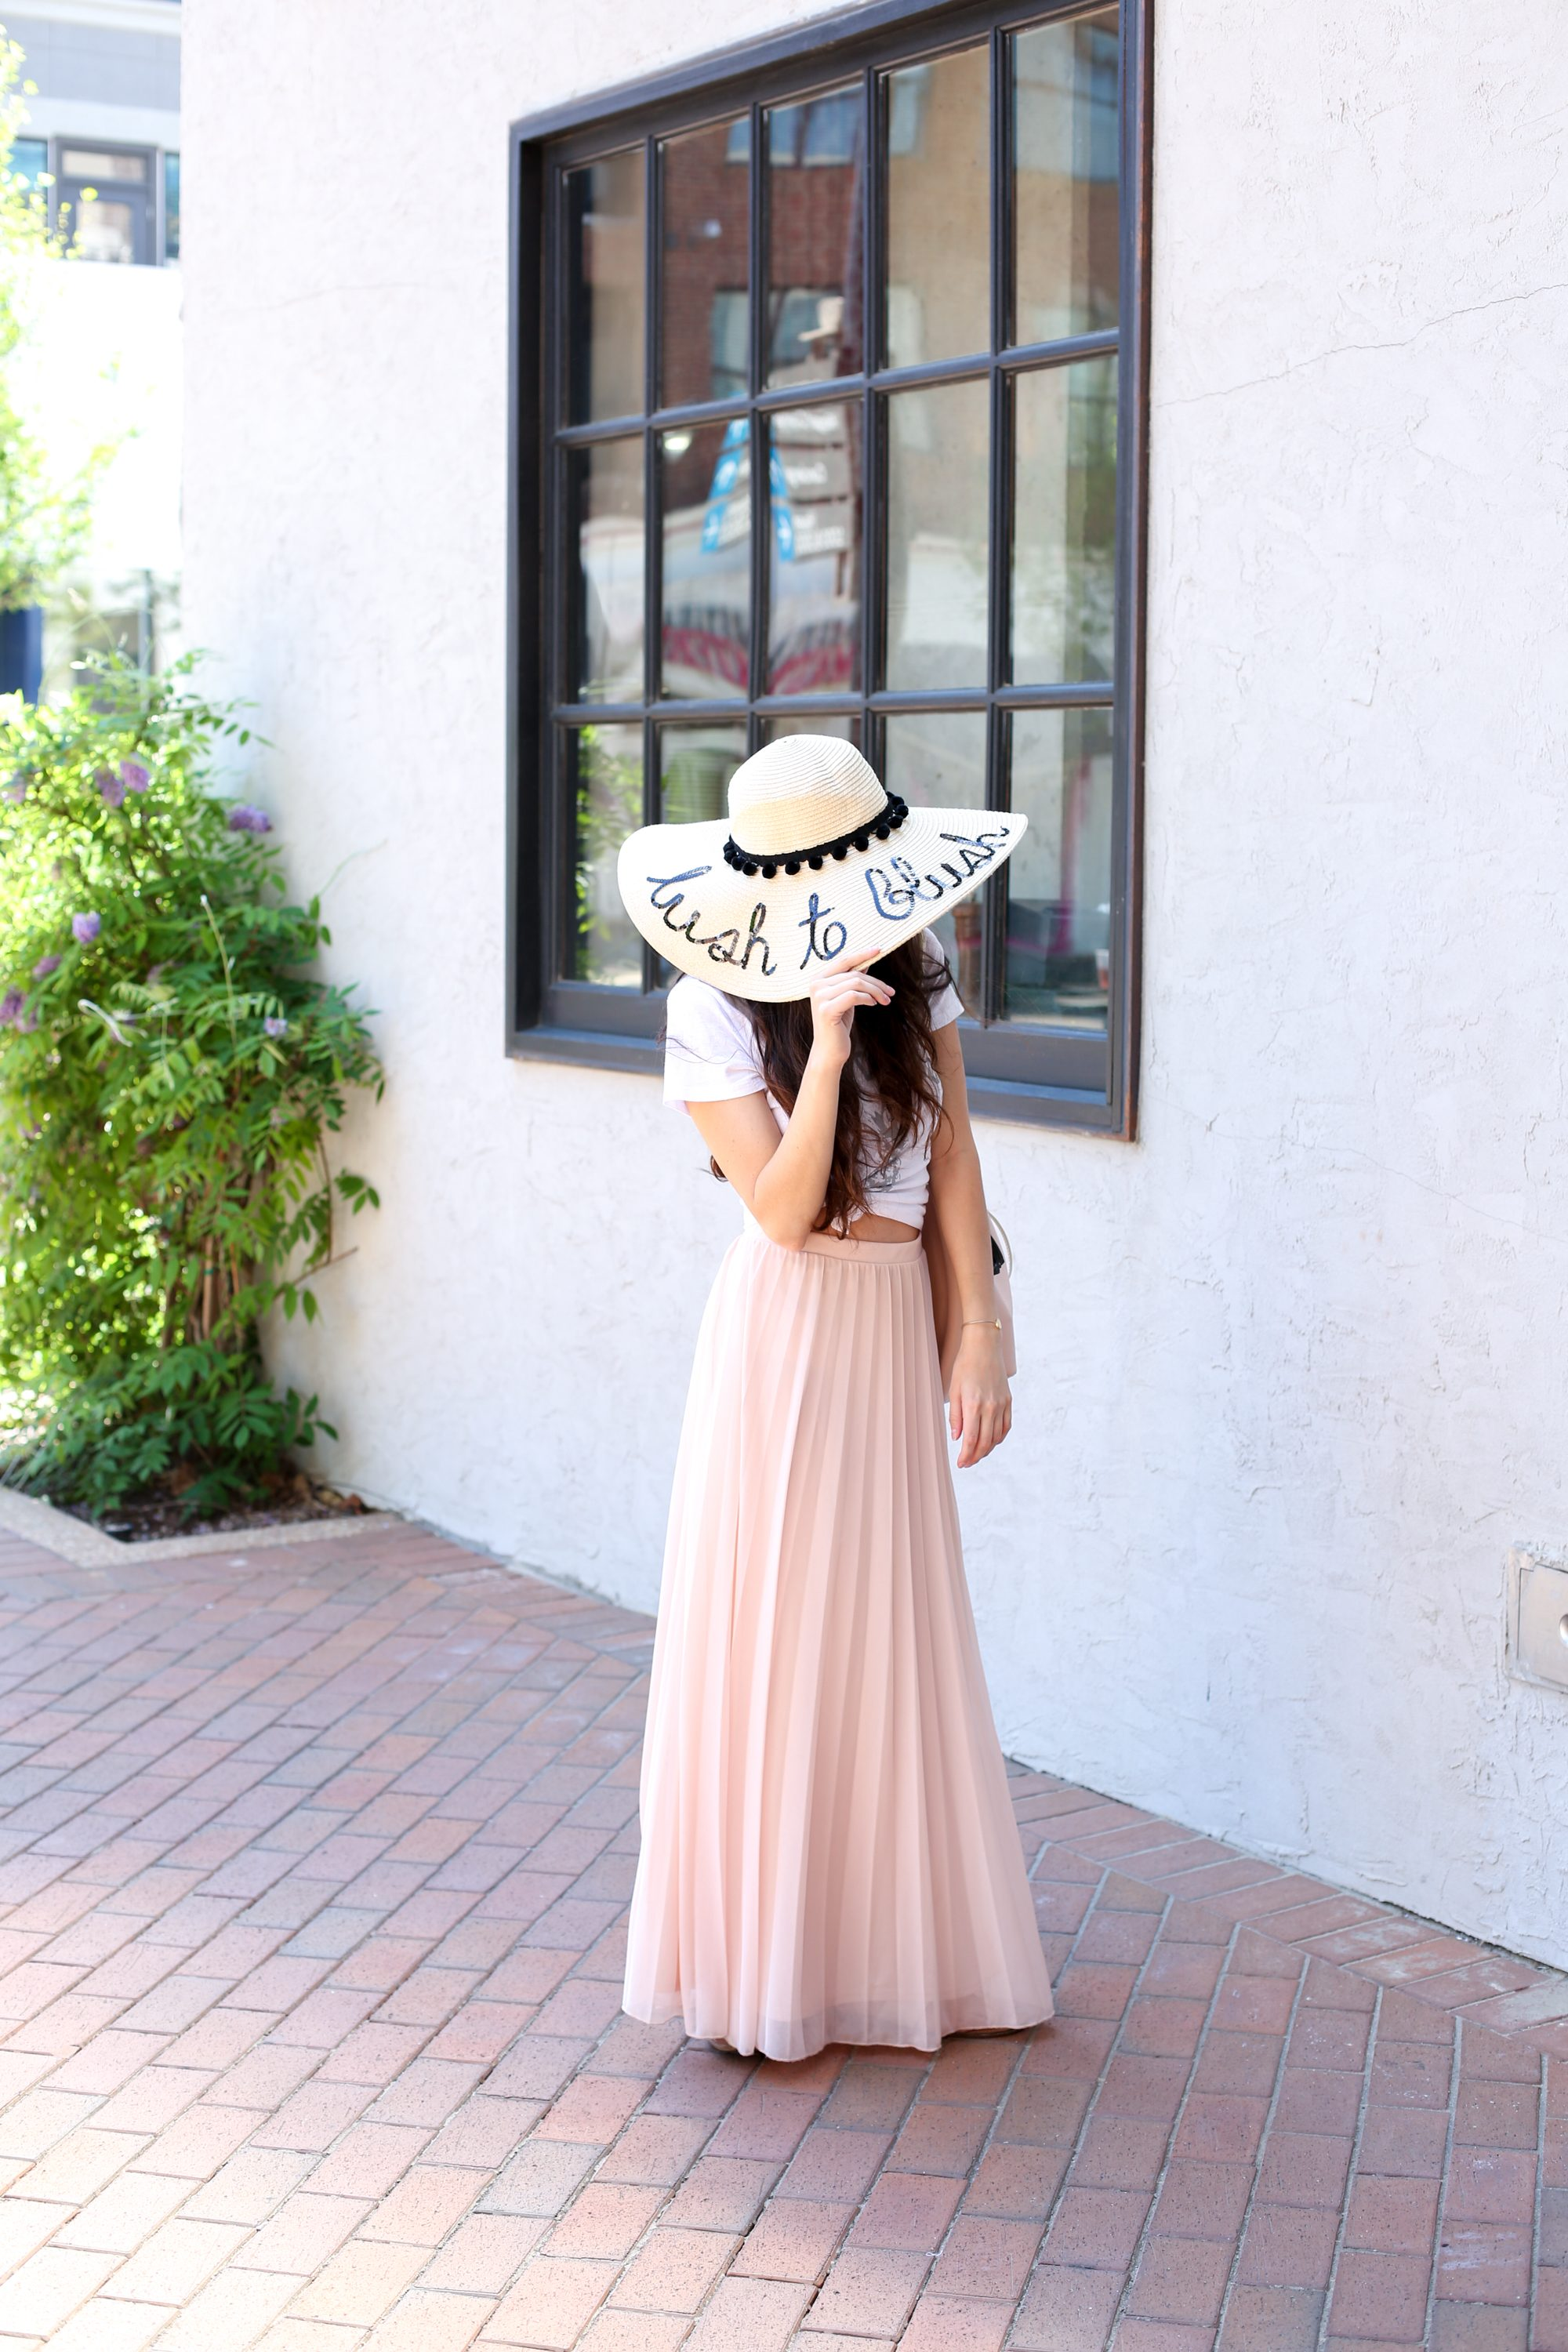 mexican-inspired style, pink maxi skirt, how to wear a maxi skirt, how to style a maxi skirt, summer outfit ideas, spring outfit ideas, travel style, vacation style, resort wear